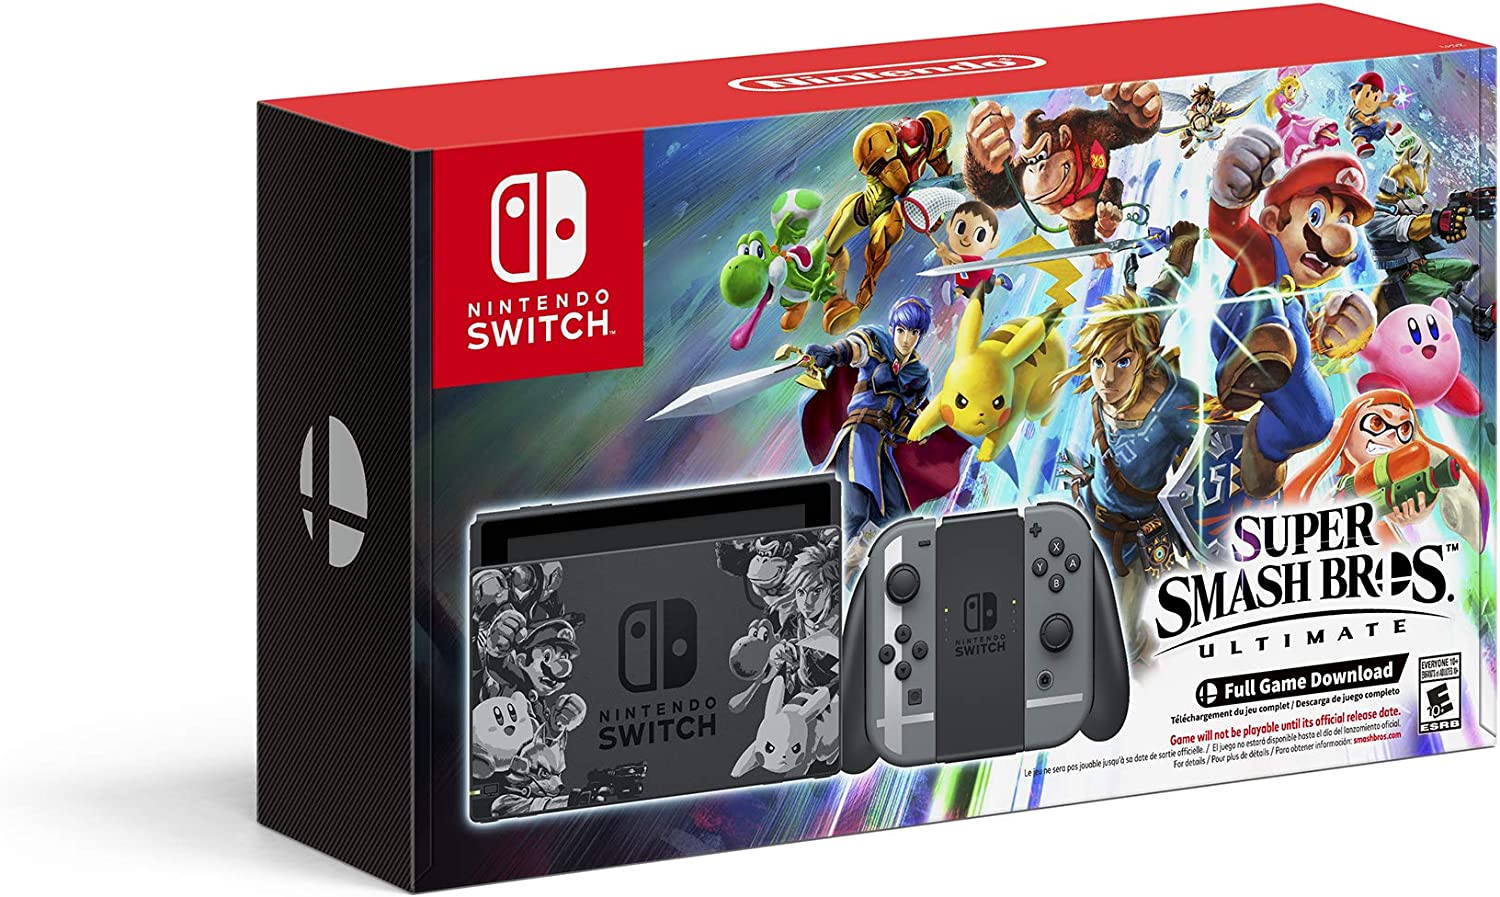 Nintendo Cambiar el Super Smash Bros. Ultimate Edition - Interruptor: Amazon.es: Videojuegos